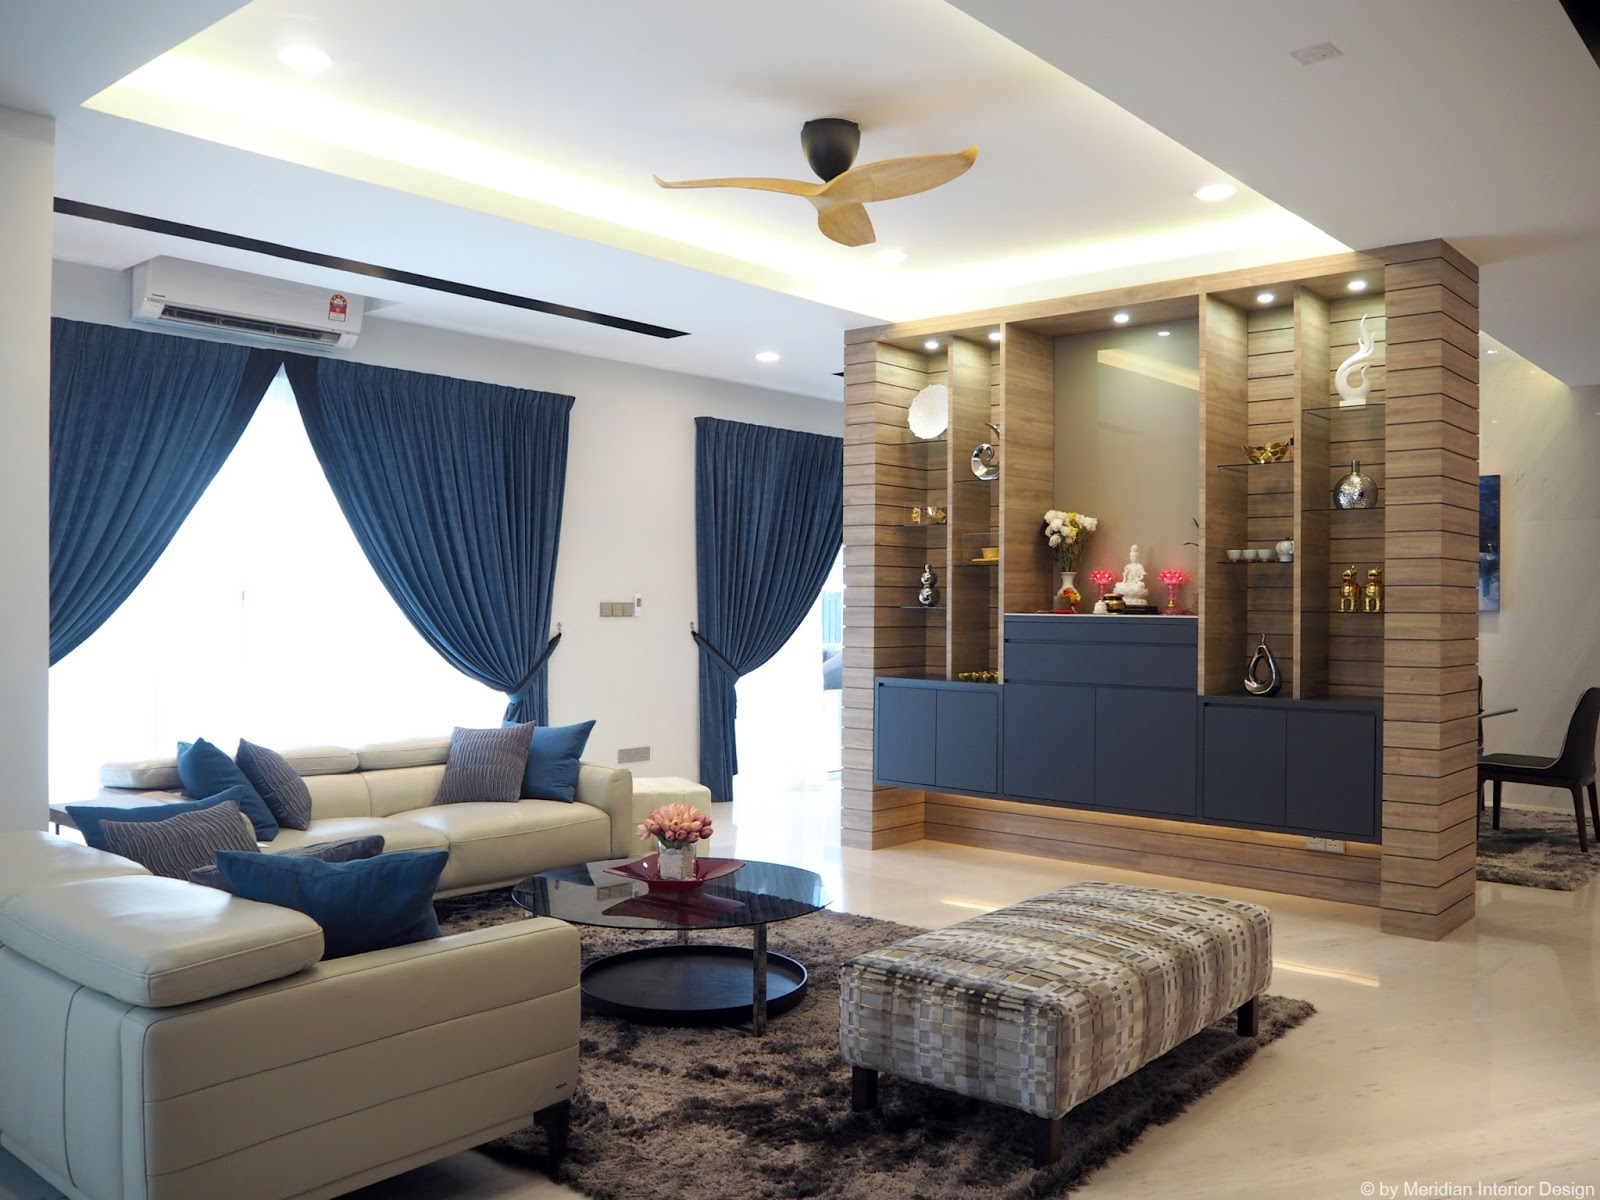 Meridian Interior Design And Kitchen Design In Kuala Lumpur Selangor Malaysia Contemporary